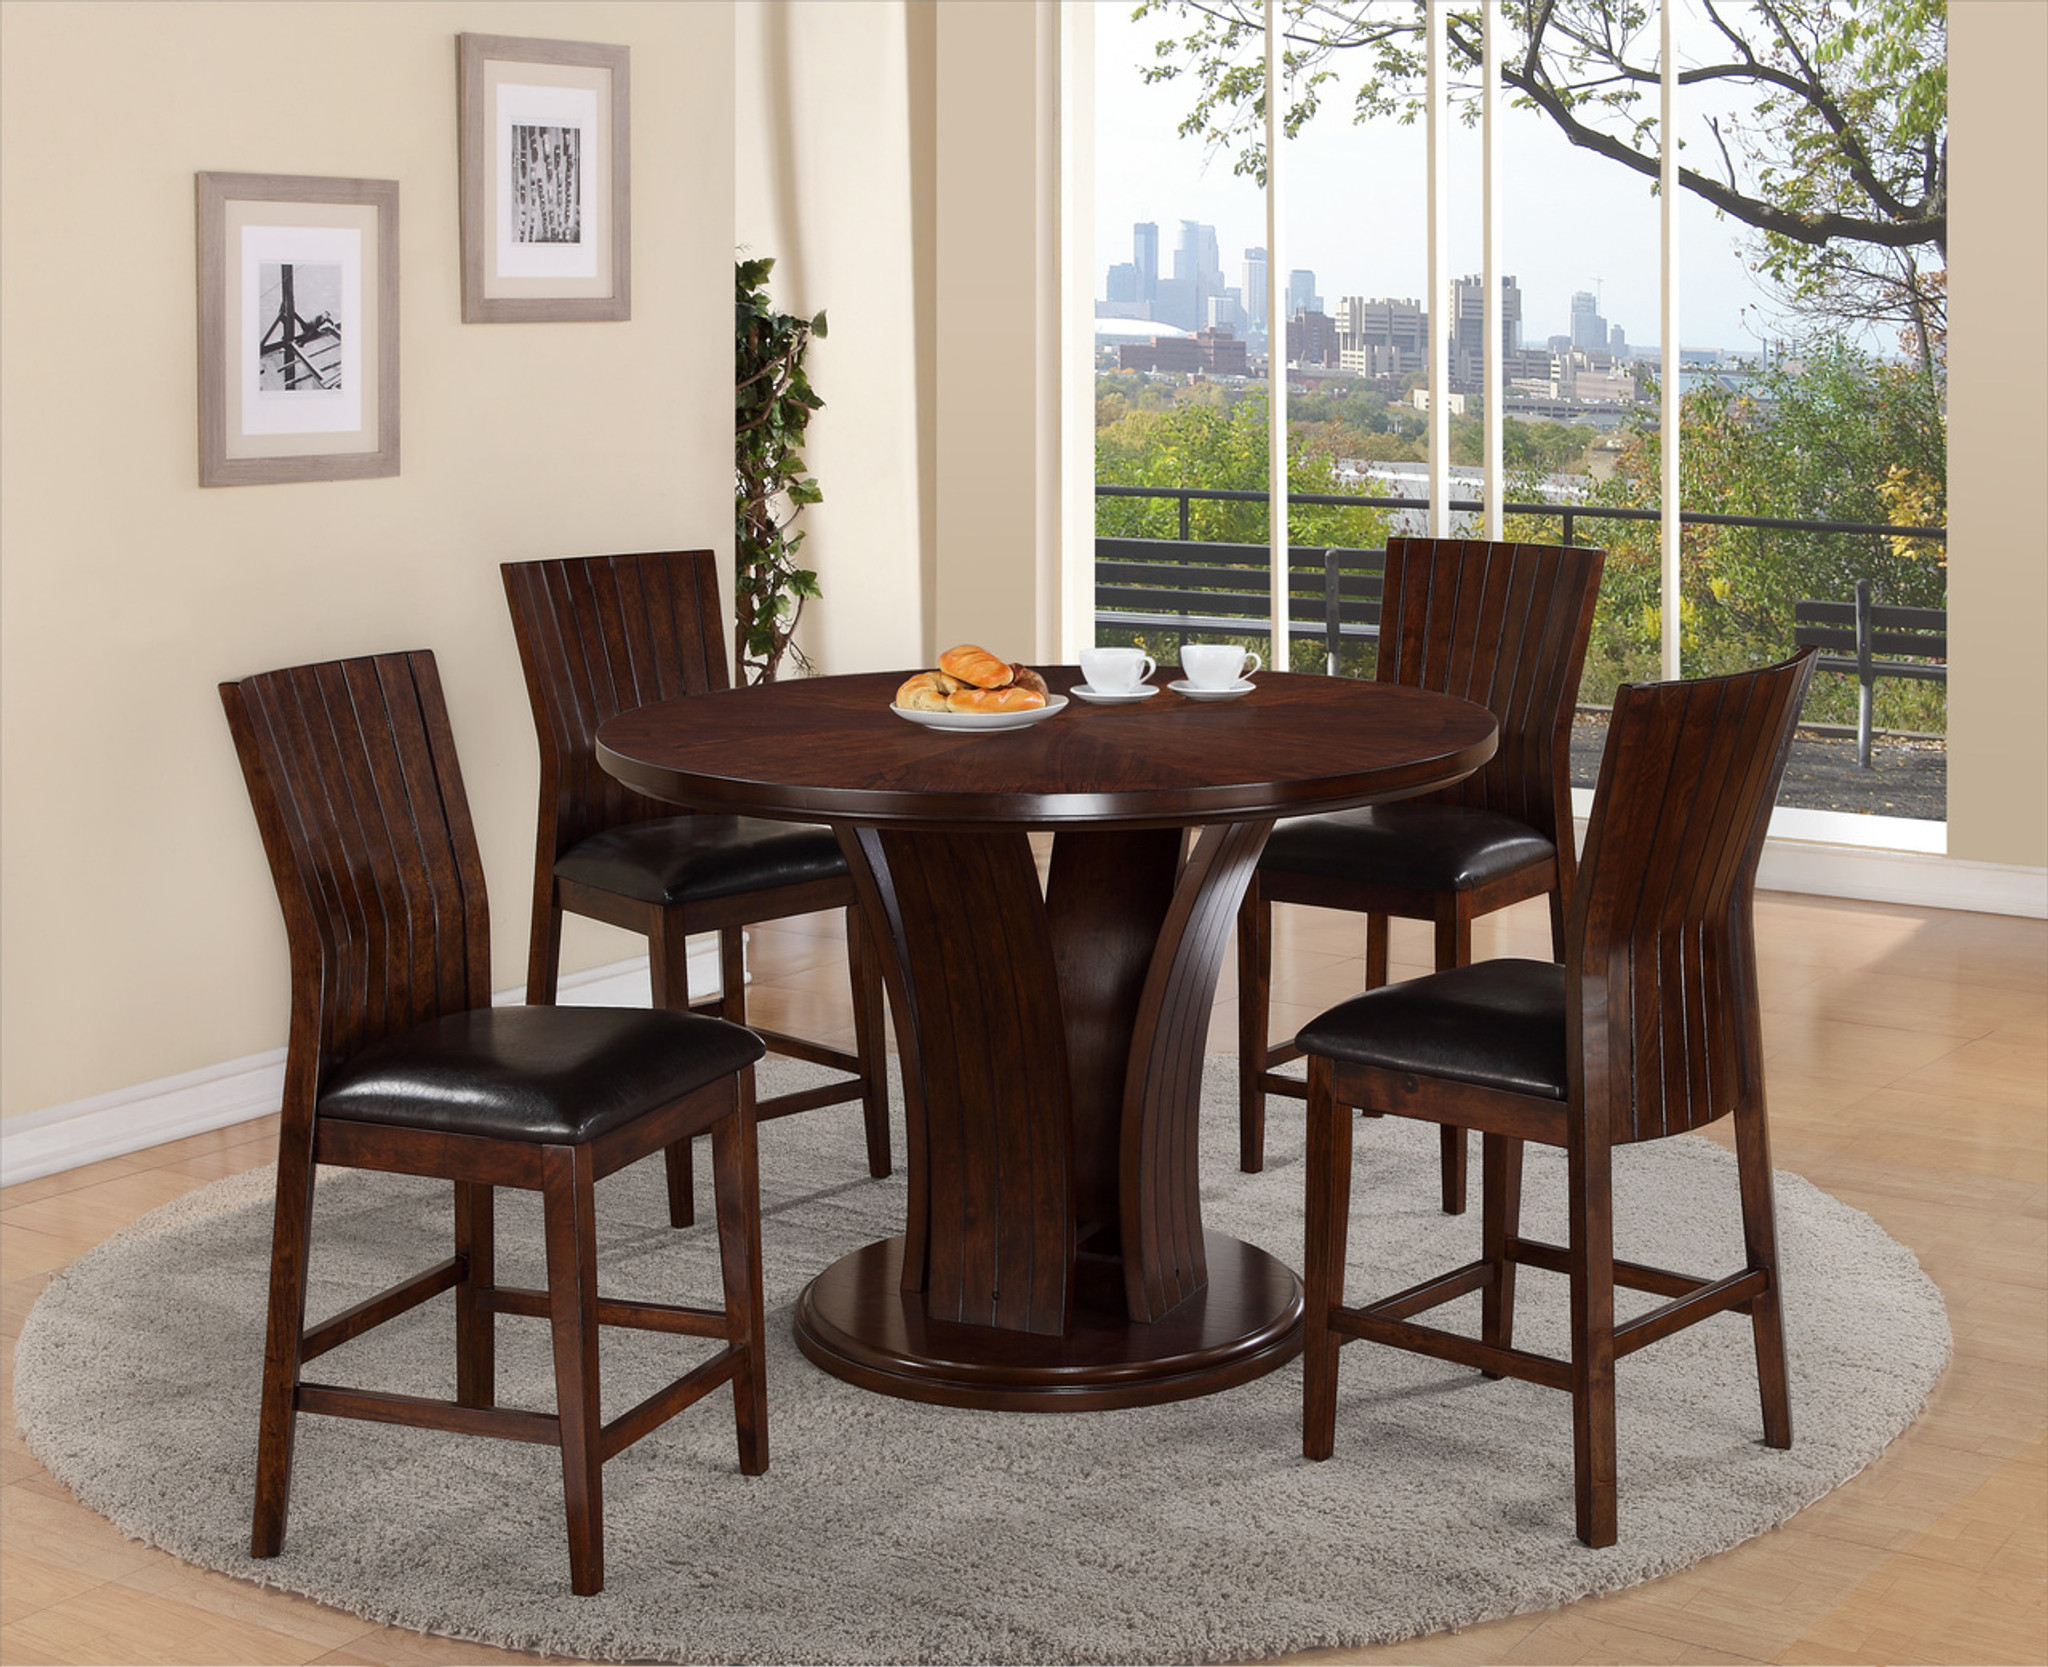 Groovy Daria Counter Height Round Dining Table Top 5Pc Set Espresso Gmtry Best Dining Table And Chair Ideas Images Gmtryco